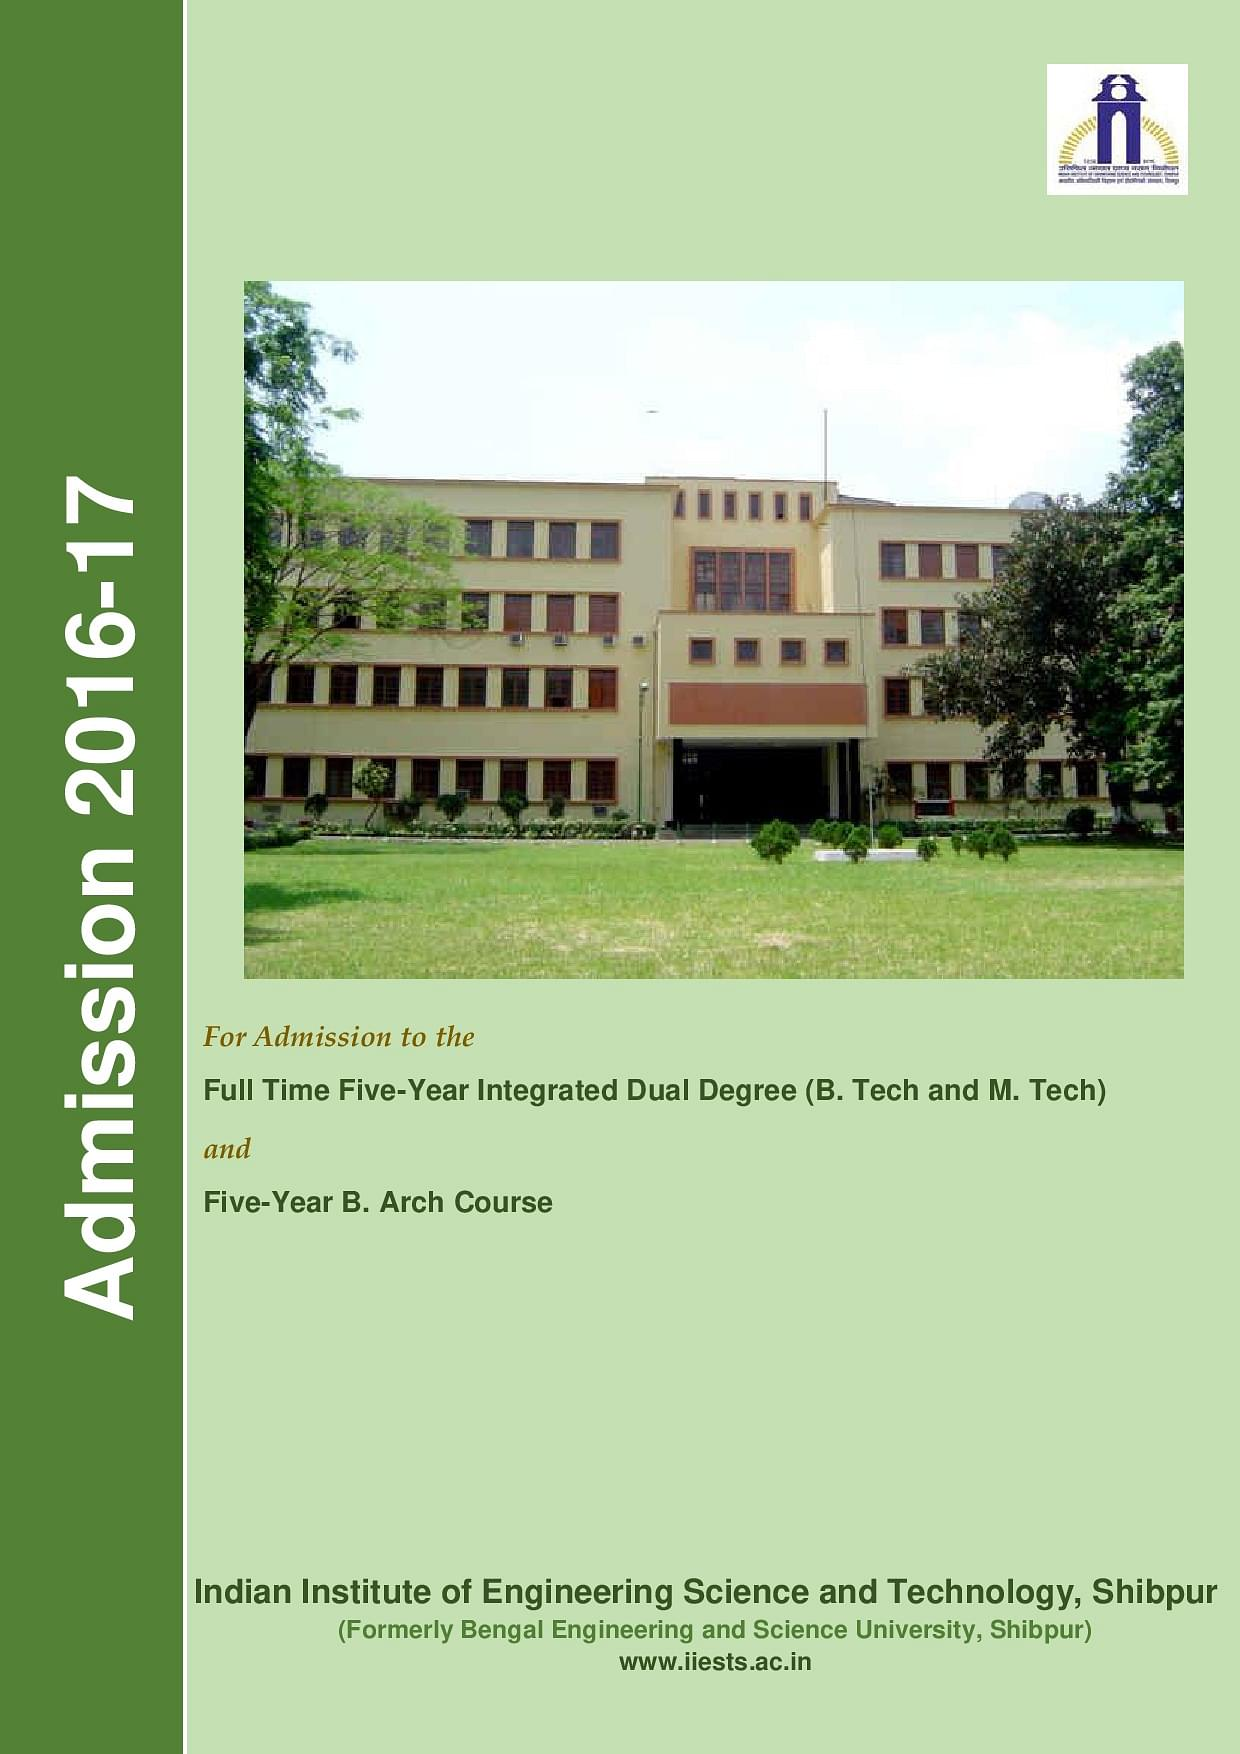 Indian Institute of Engineering Science and Technology - [IIEST] Shibpur, Howrah - Admissions ...